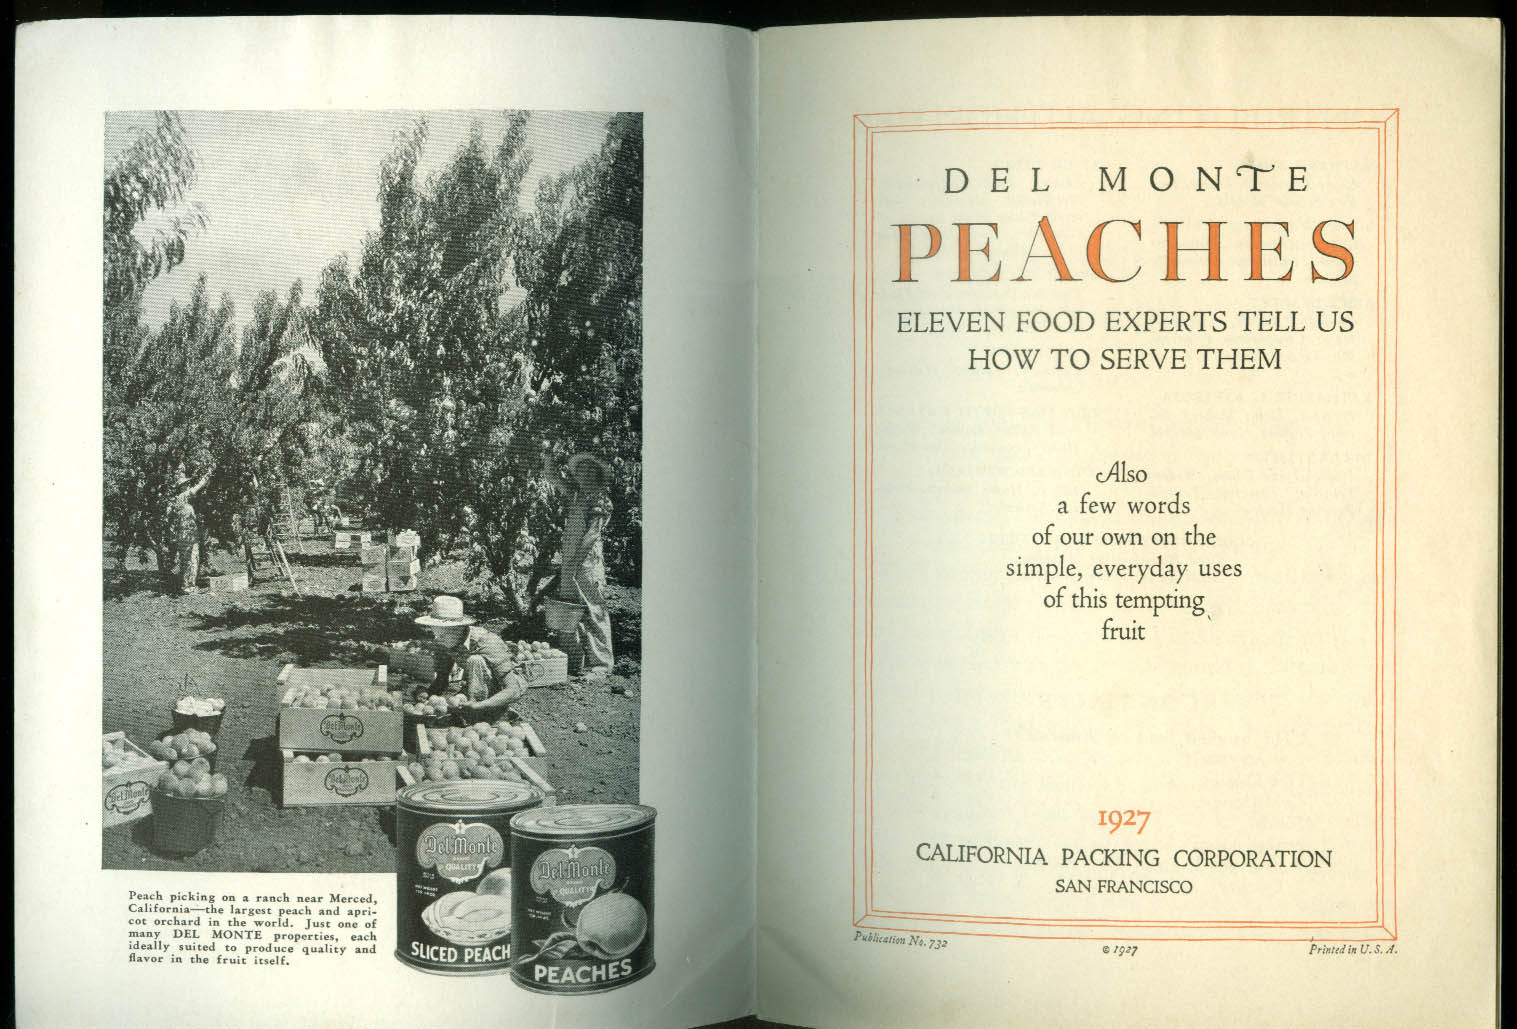 Del Monte Peaches: 11 Food Experts Tell How to Serve Them recipe booklet 1927